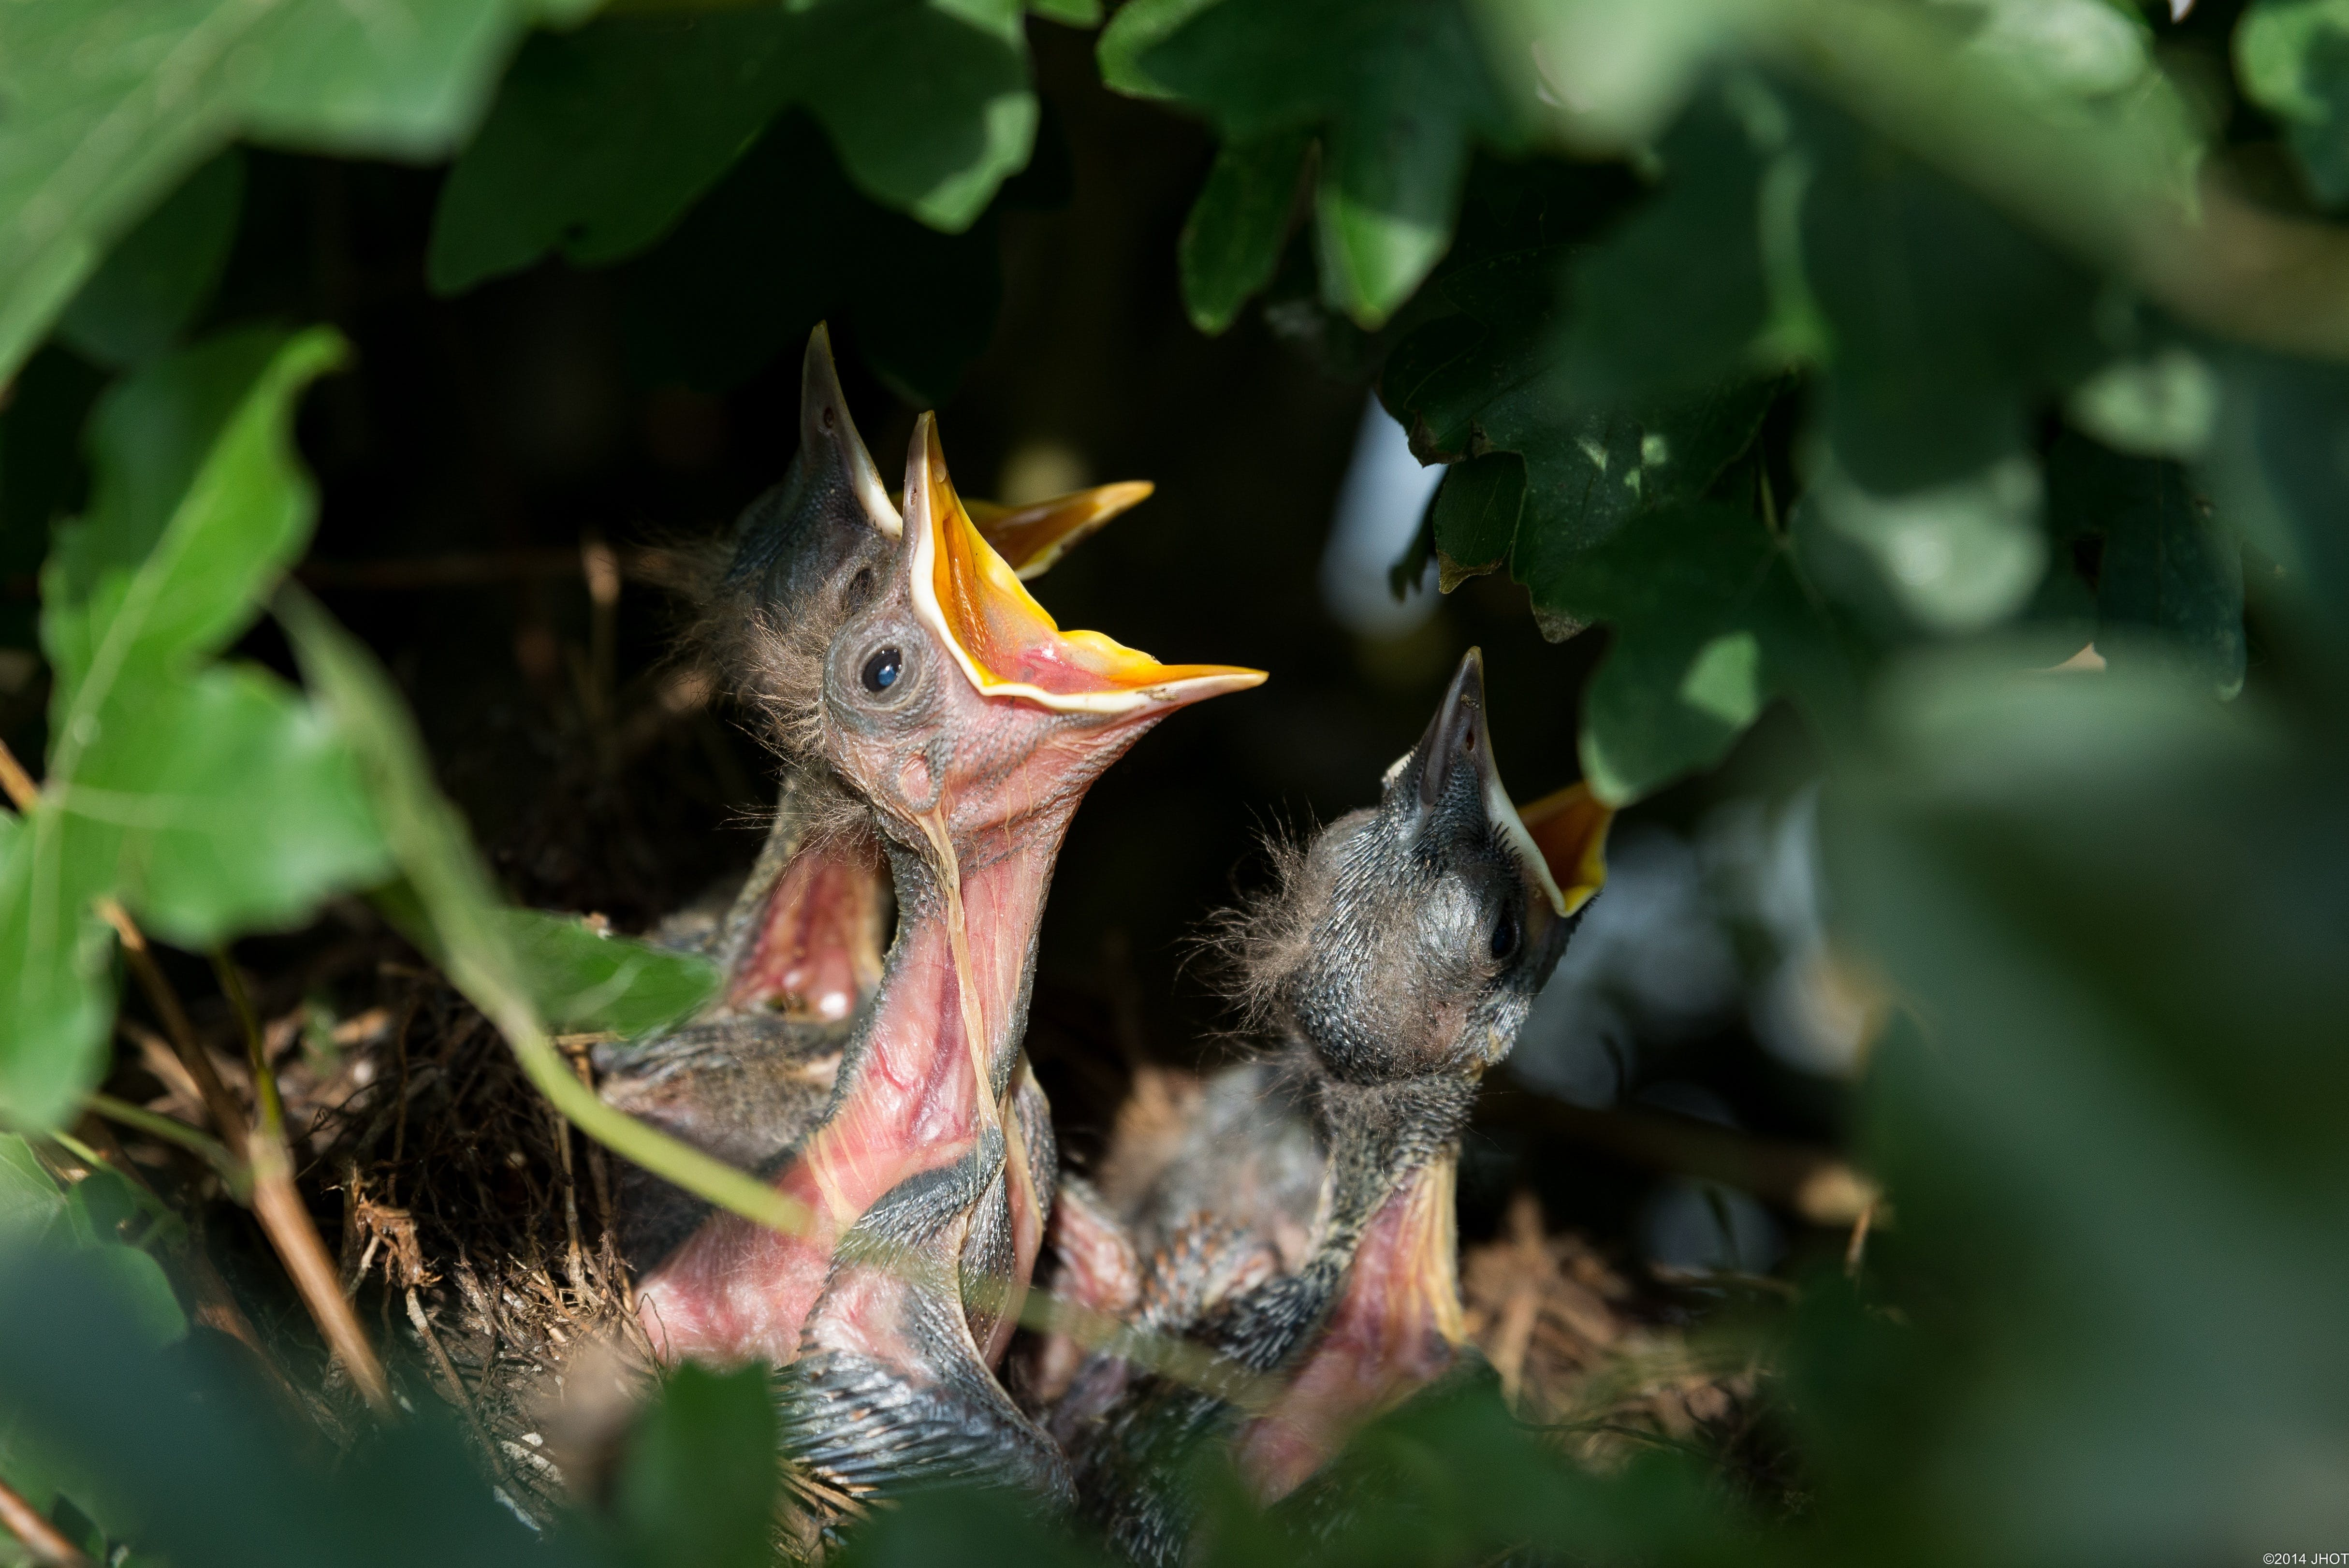 Bird Chicks Opening Mouth